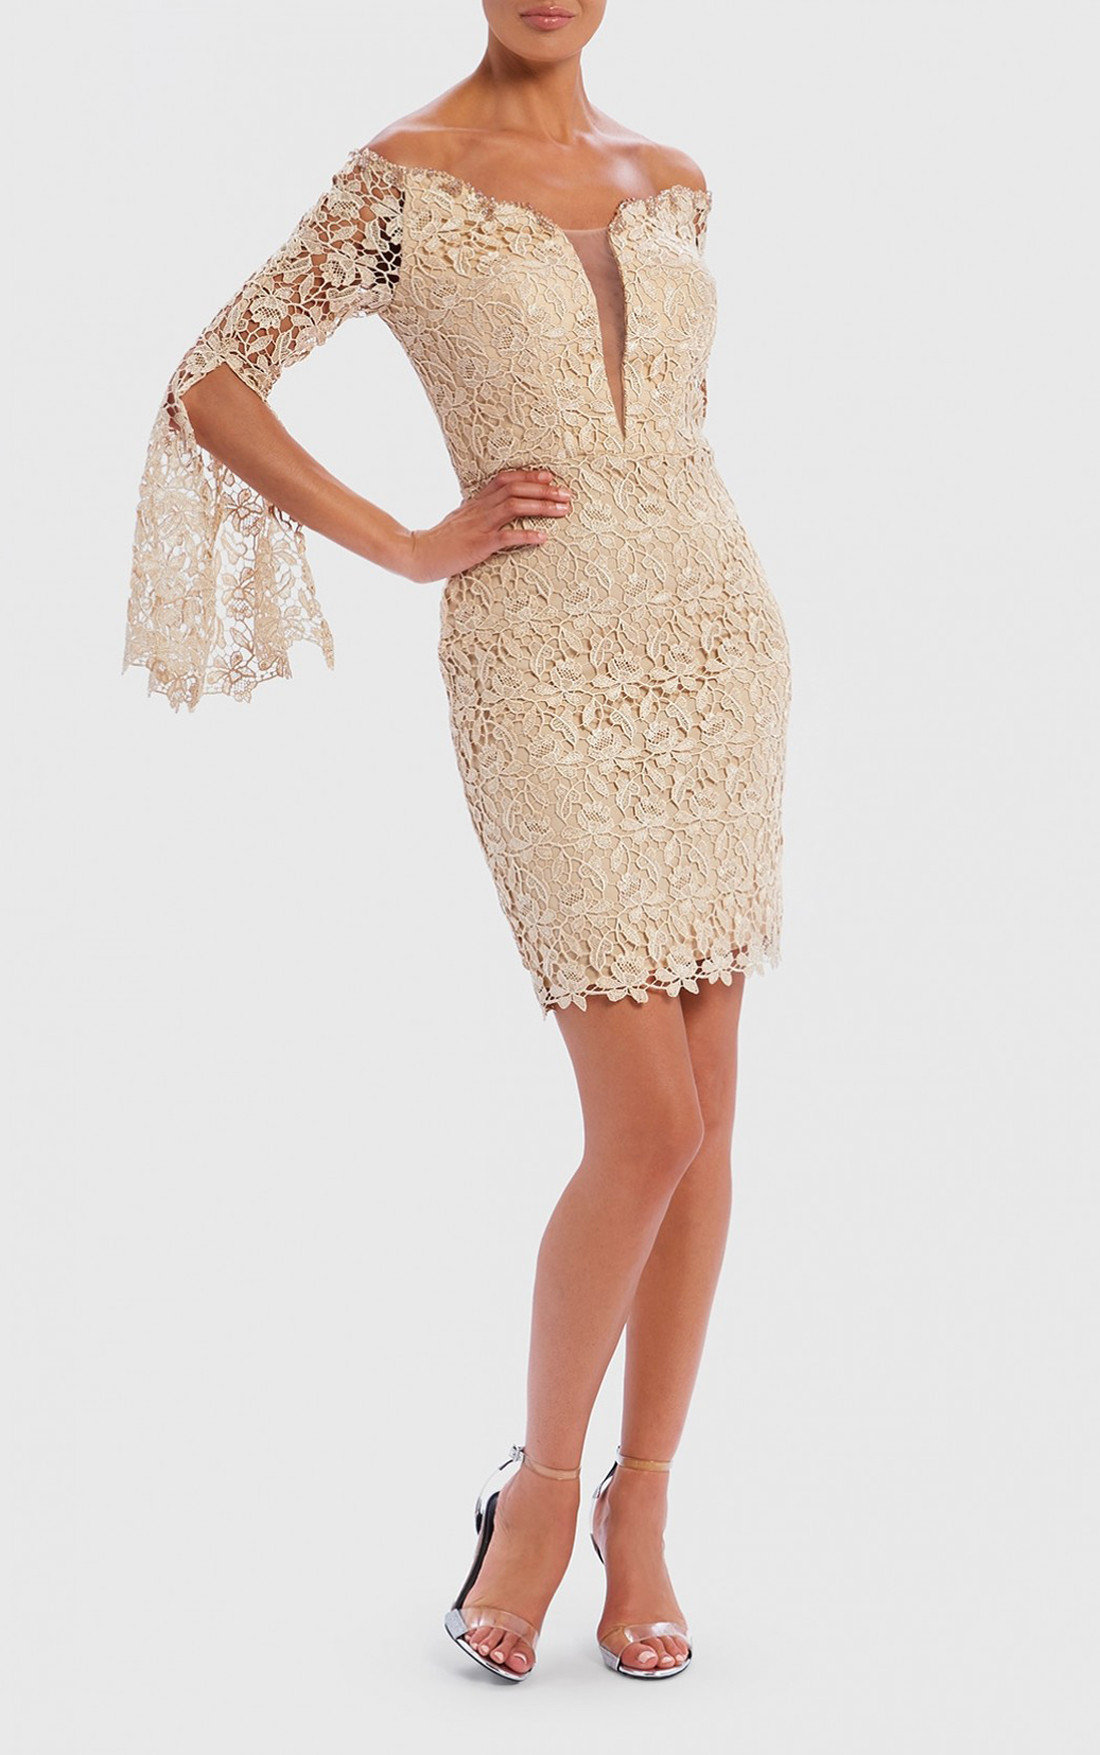 Forever Unique - Apollo Gold Decollete Lace Embroidered Mini Dress (AF8906)